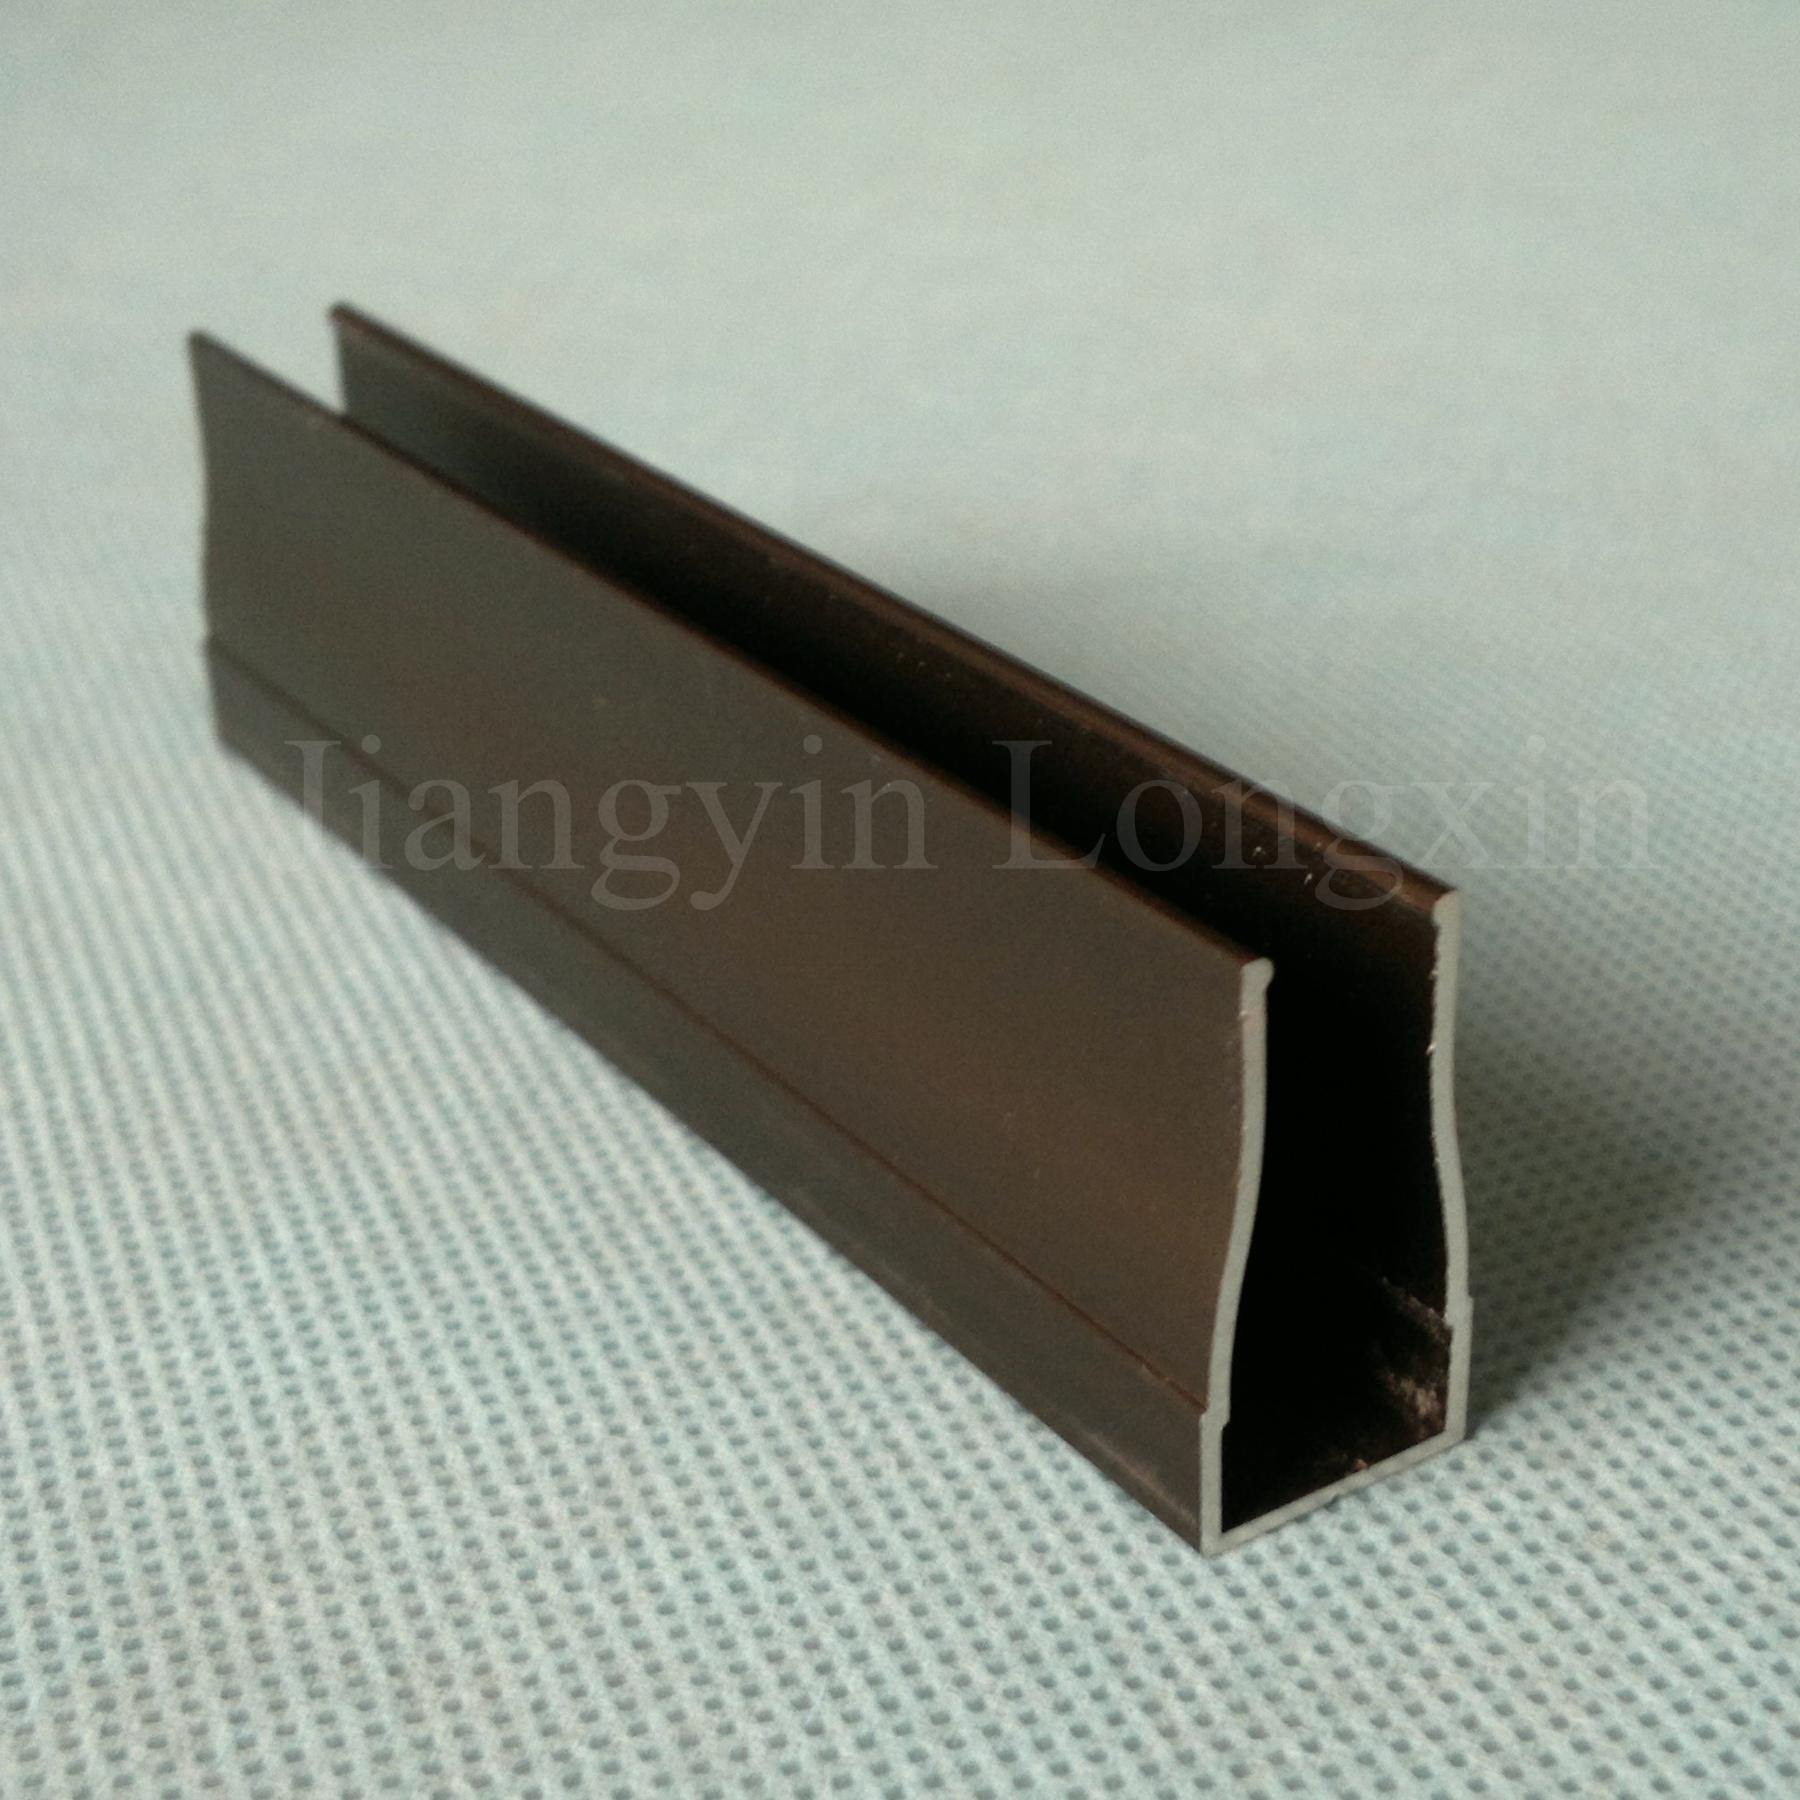 Brown Anodized Aluminum Frame for Windows